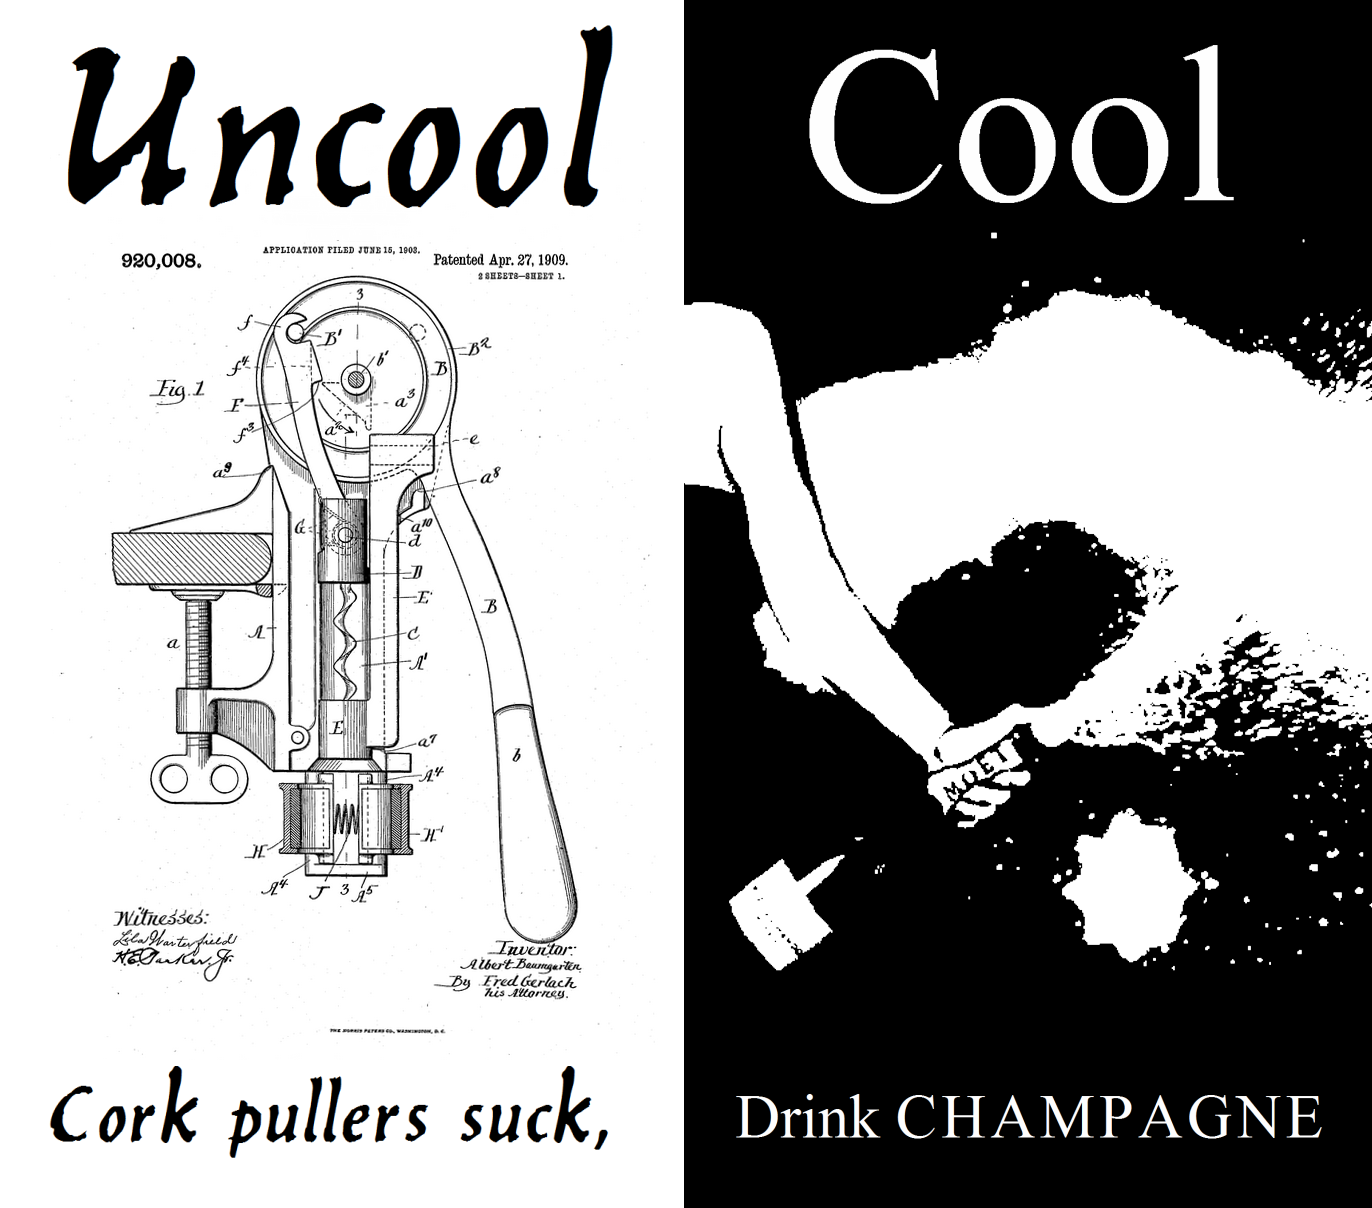 Cork-pullers-suck...drink-champagne